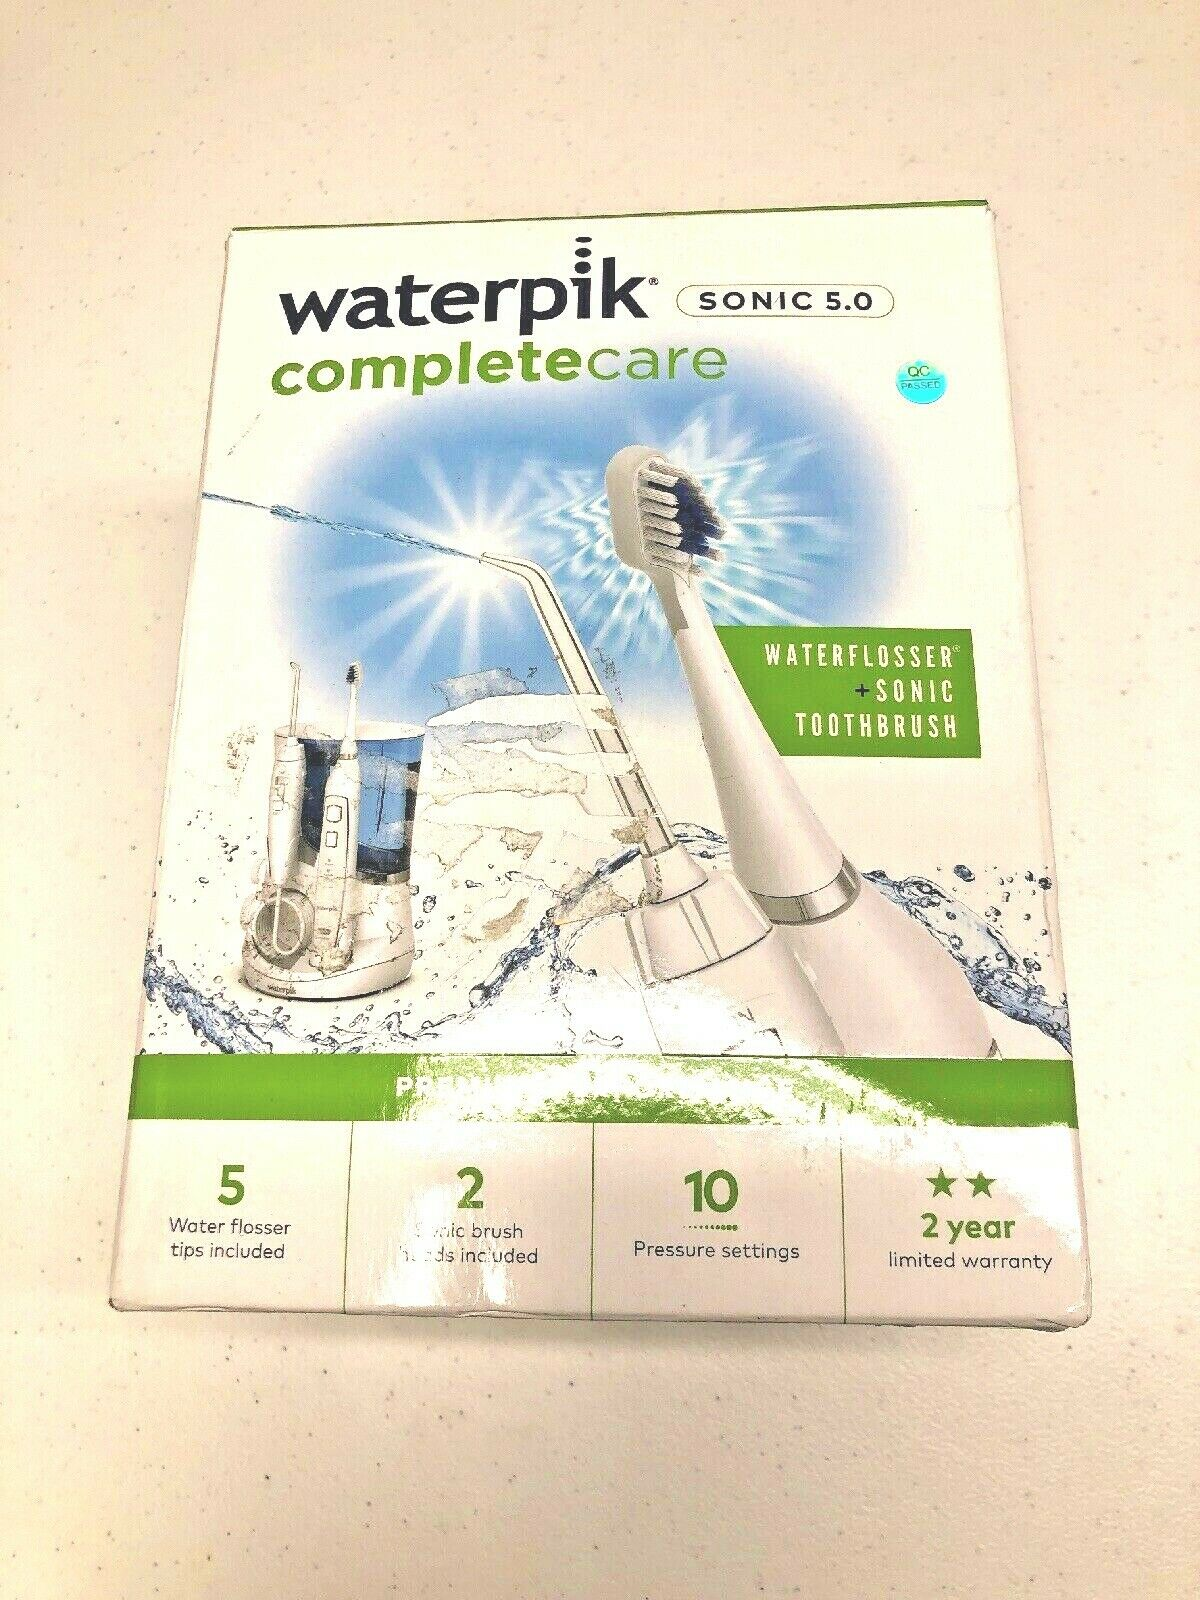 Waterpik WP-861 Complete Care 5.0 Water Flosser and Electric